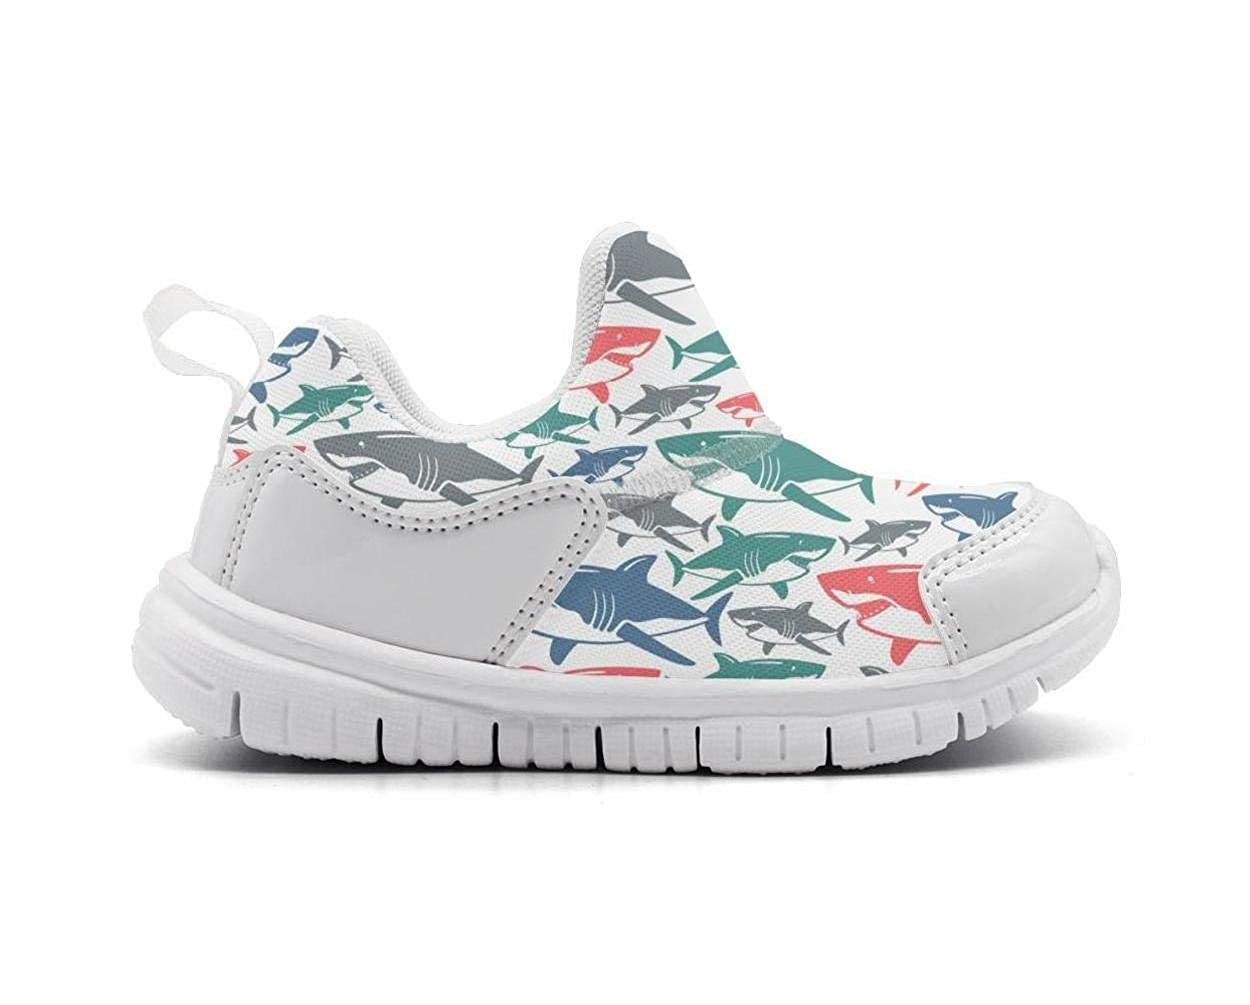 Kids shark birthday decorations Cute Breathable Mesh Athletic Running Shoes